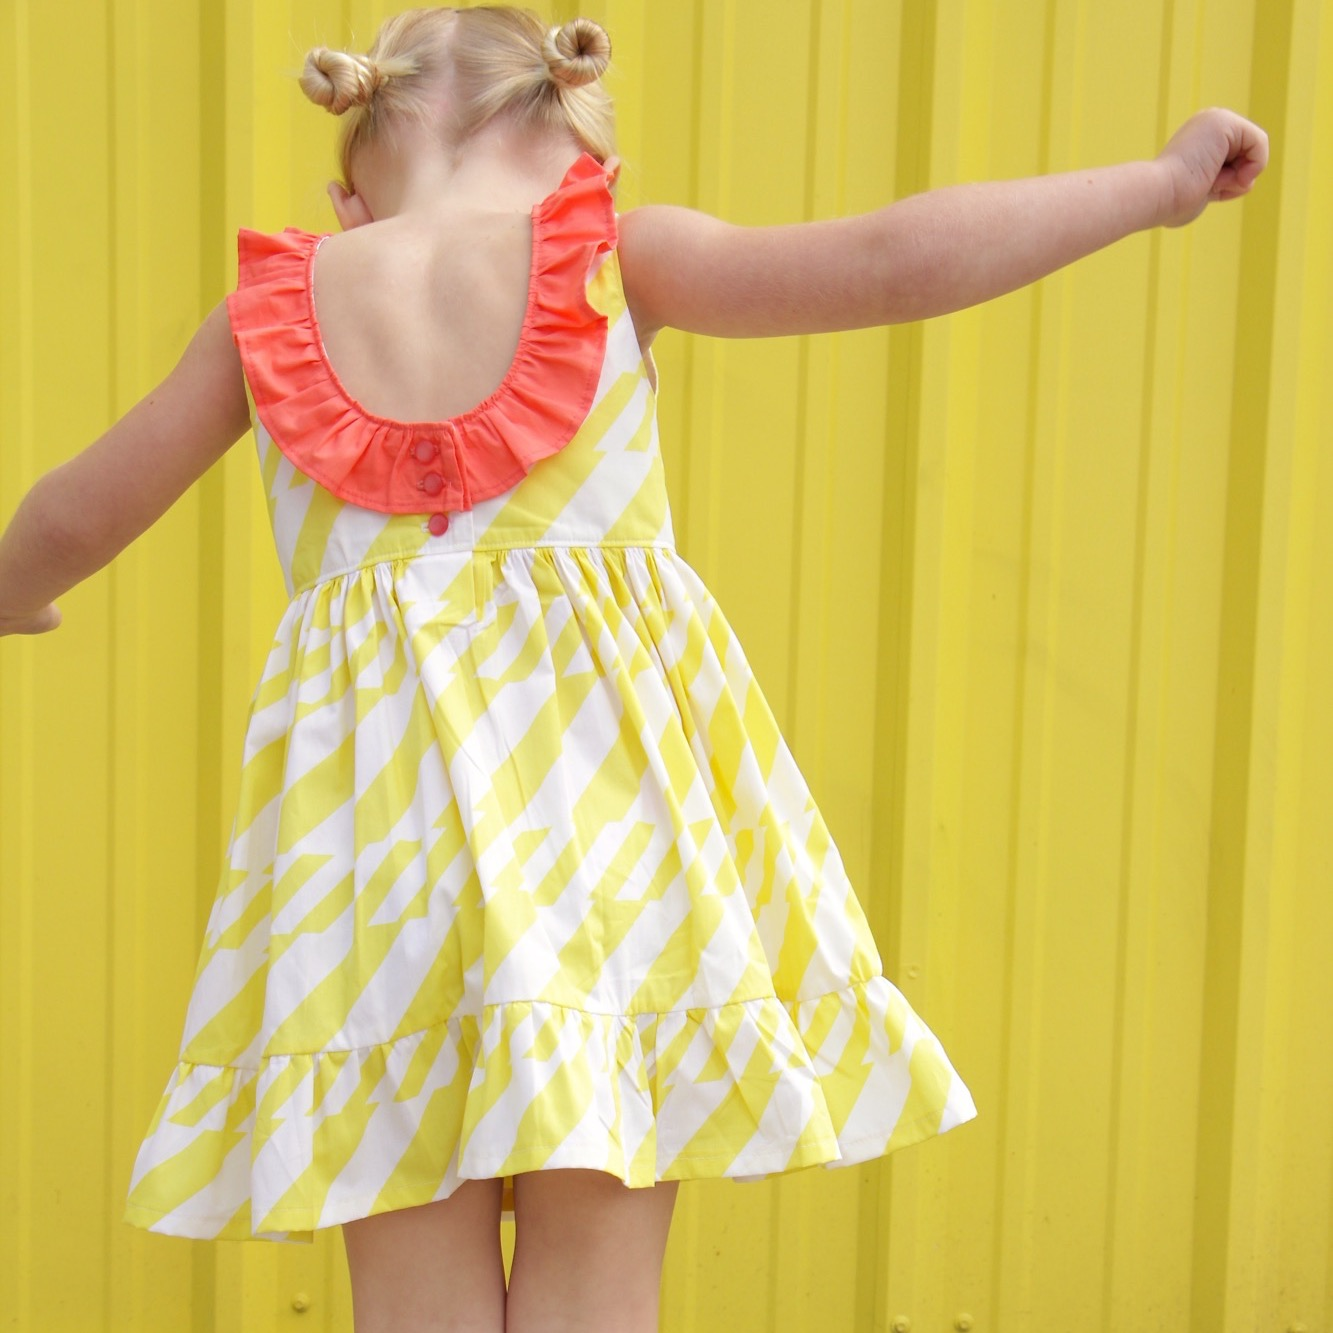 Boardwalk Delight fabric collection designed by Dana Willard for Art Gallery Fabrics - Sophie Dress by MADE Everyday - pattern from Simple Life Pattern Company